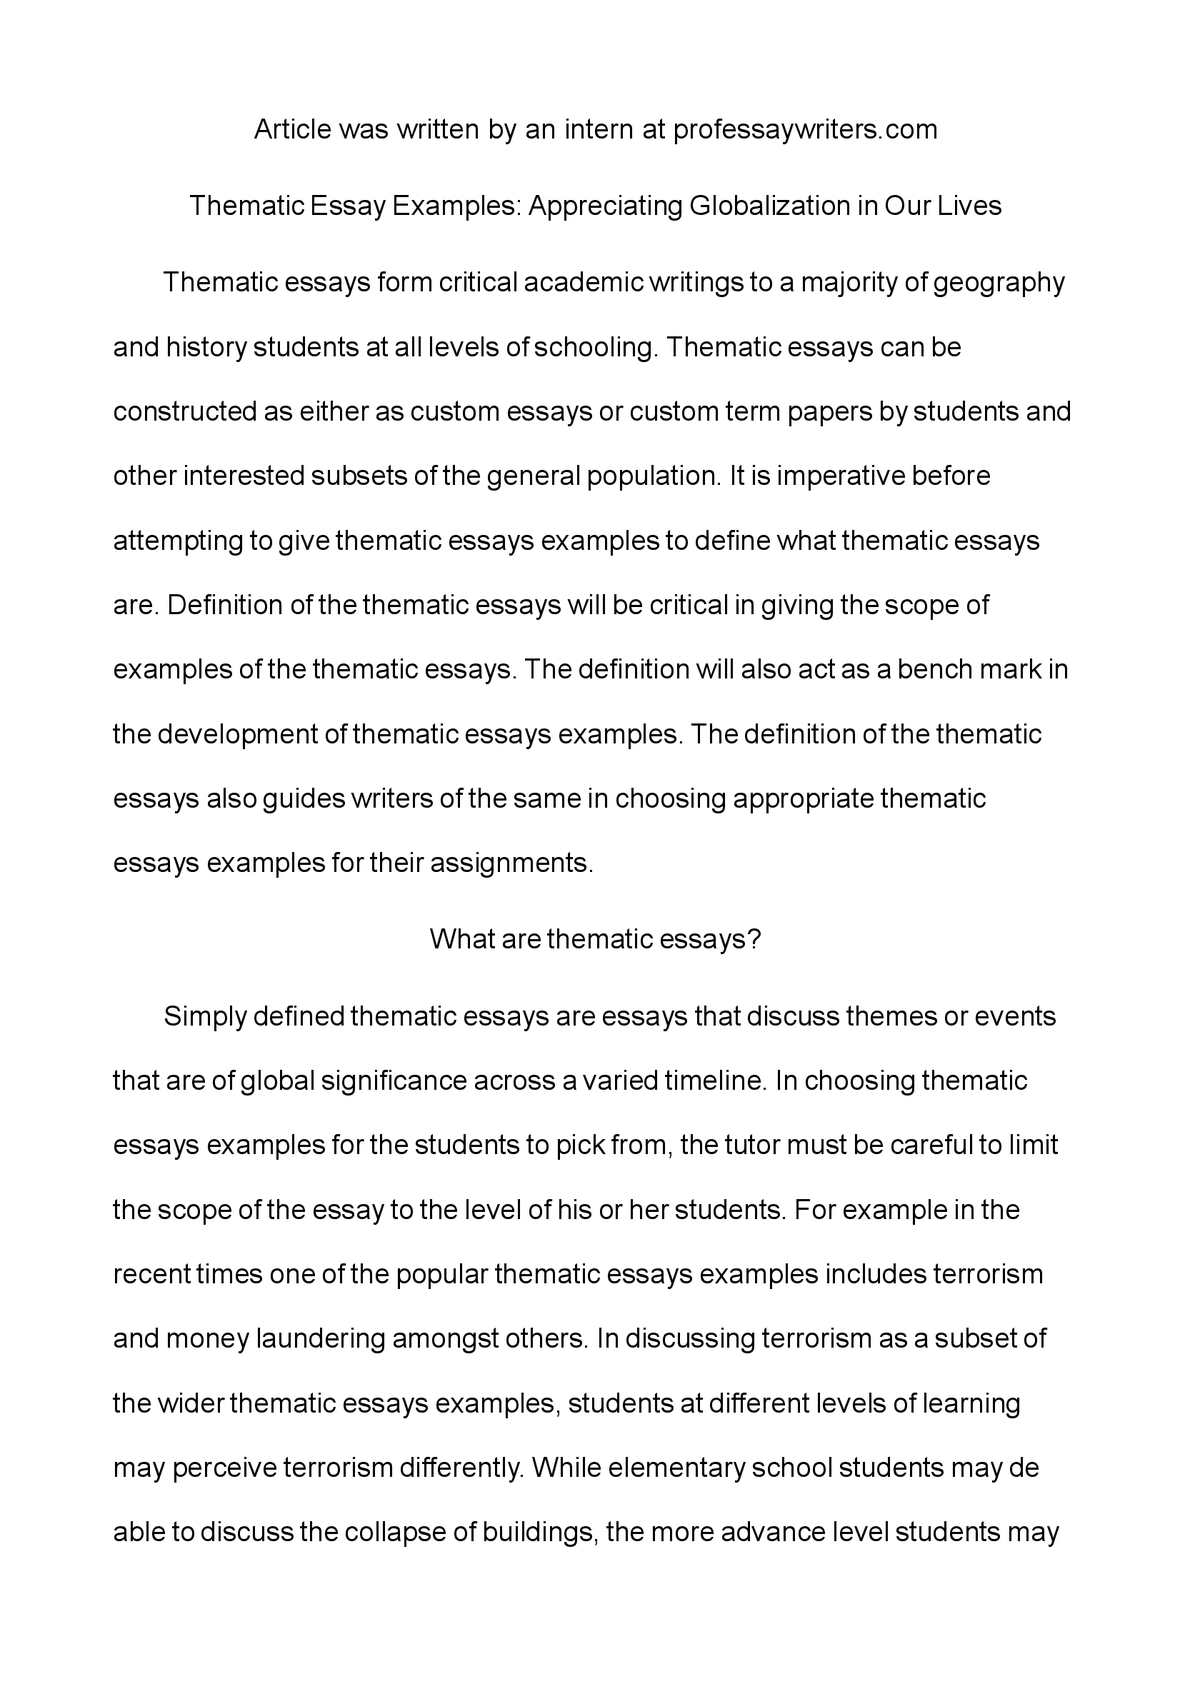 thematic essay examples appreciating globalization in  thematic essay examples appreciating globalization in our lives